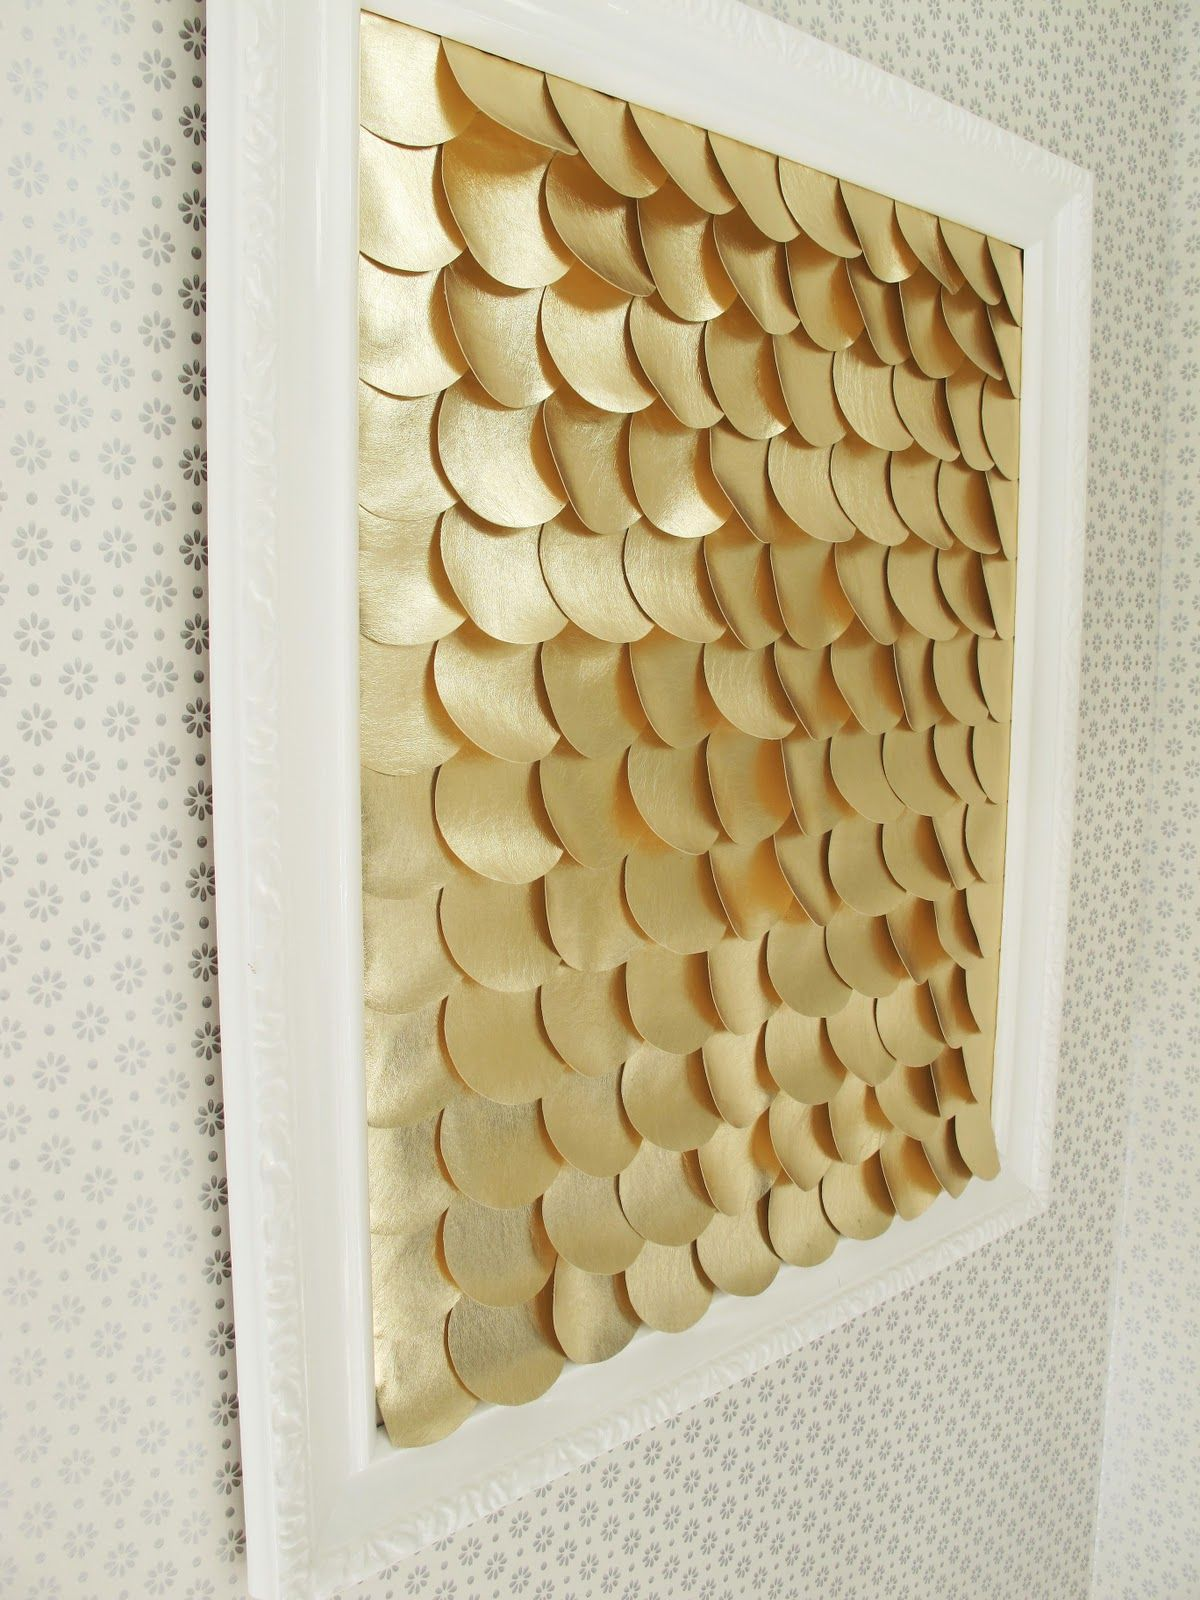 DIY scale artwork. Cut fabric/paper circles and hot glue to grid ...